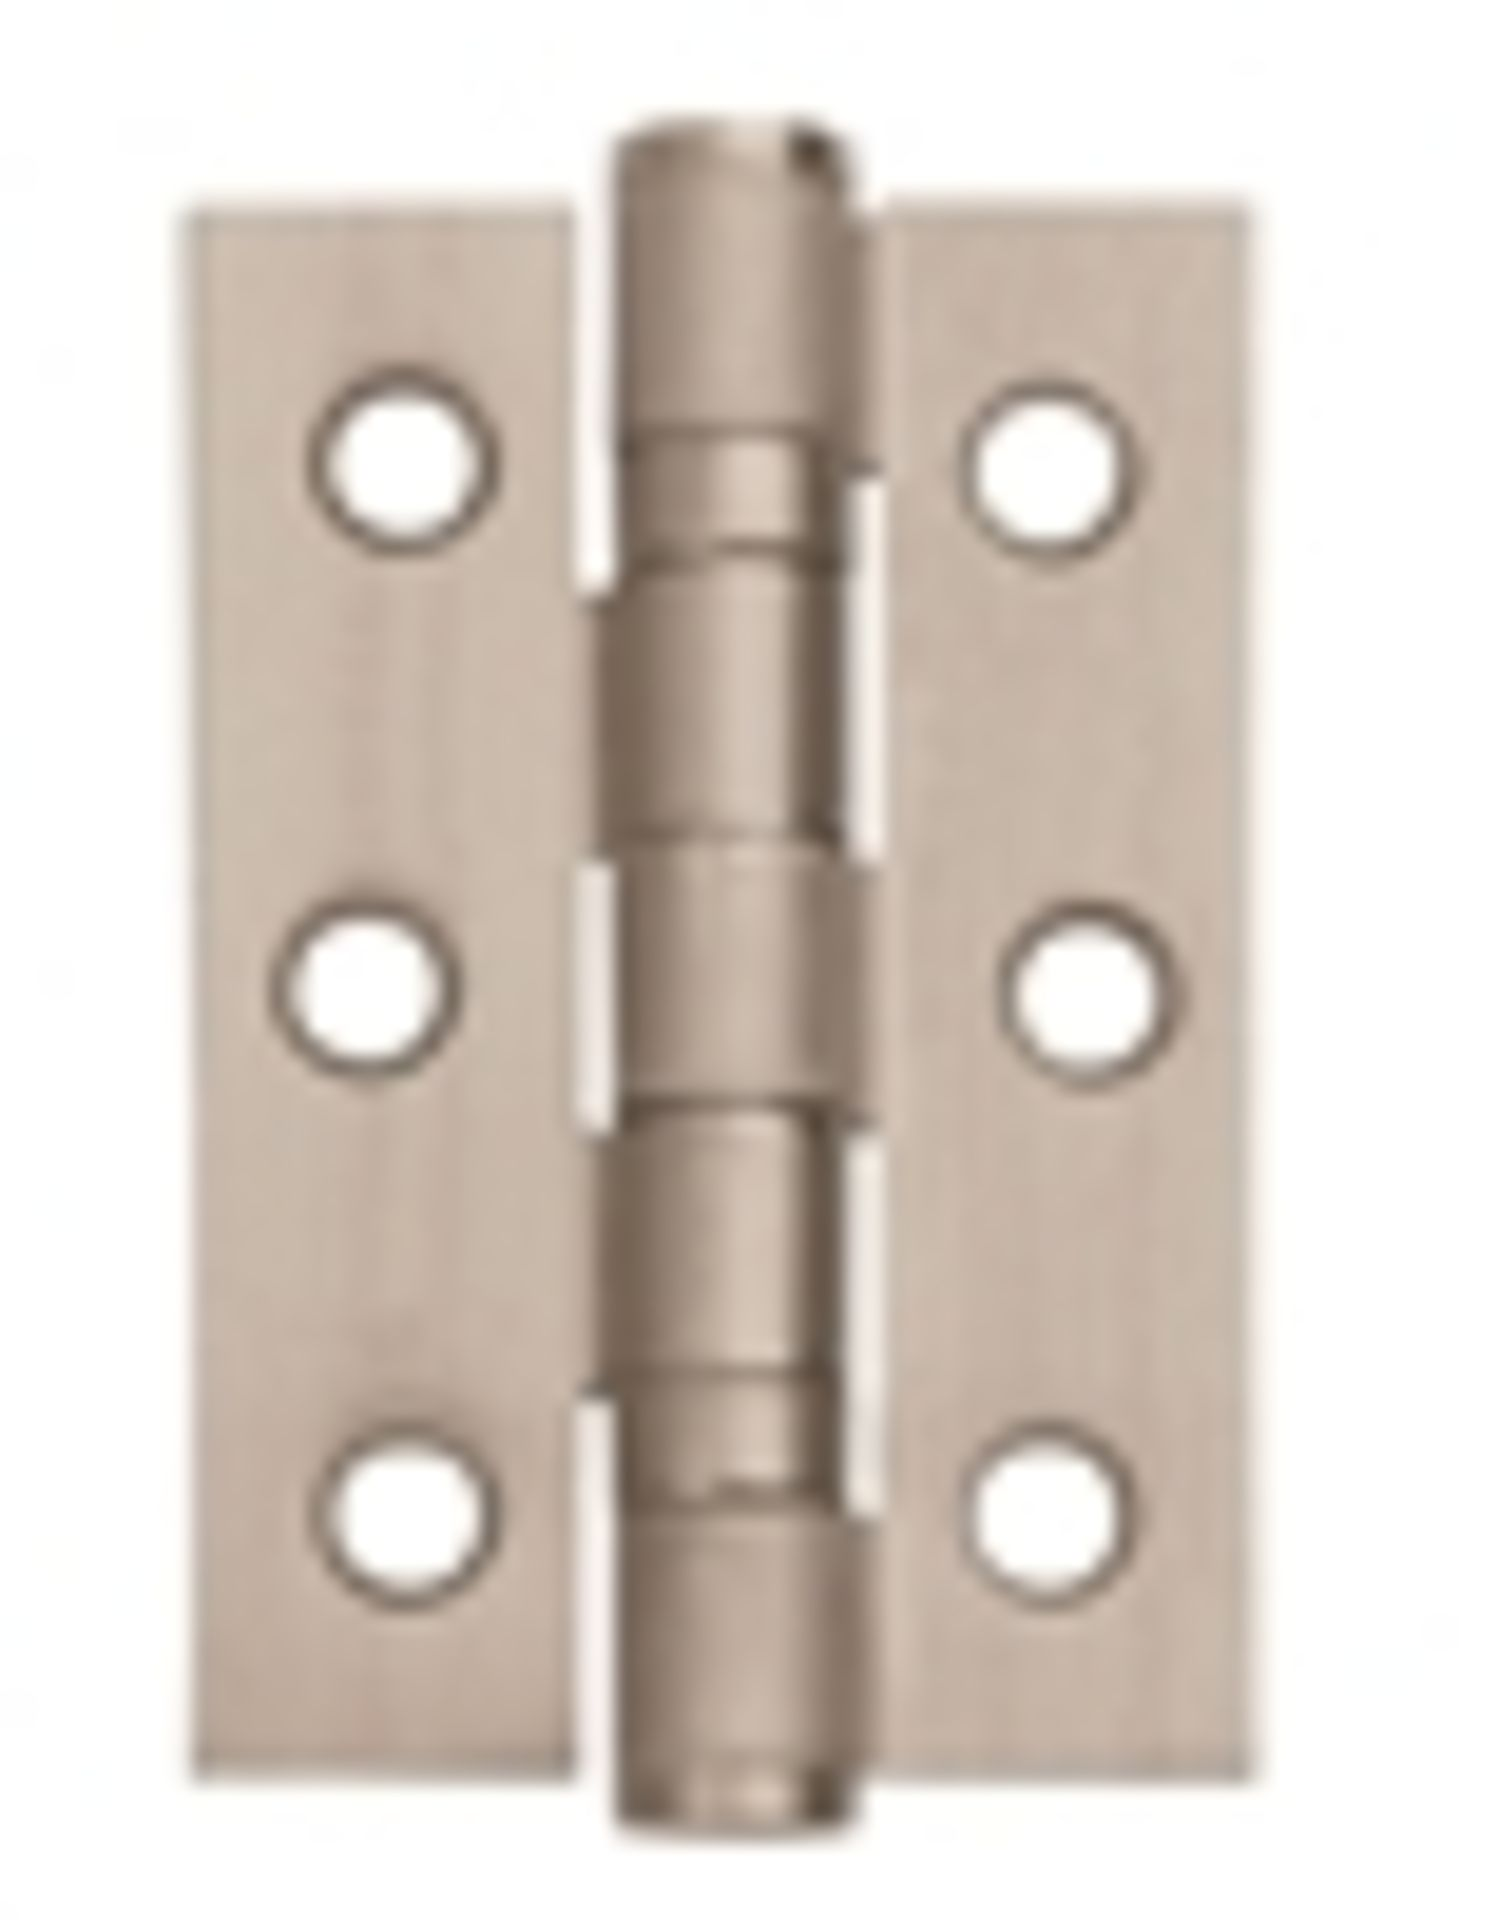 Lot 24 - 4 Pairs Dale Falco Lever On Square Rose. 3539 Smart Pack Inc. Hinges And Smart Lock